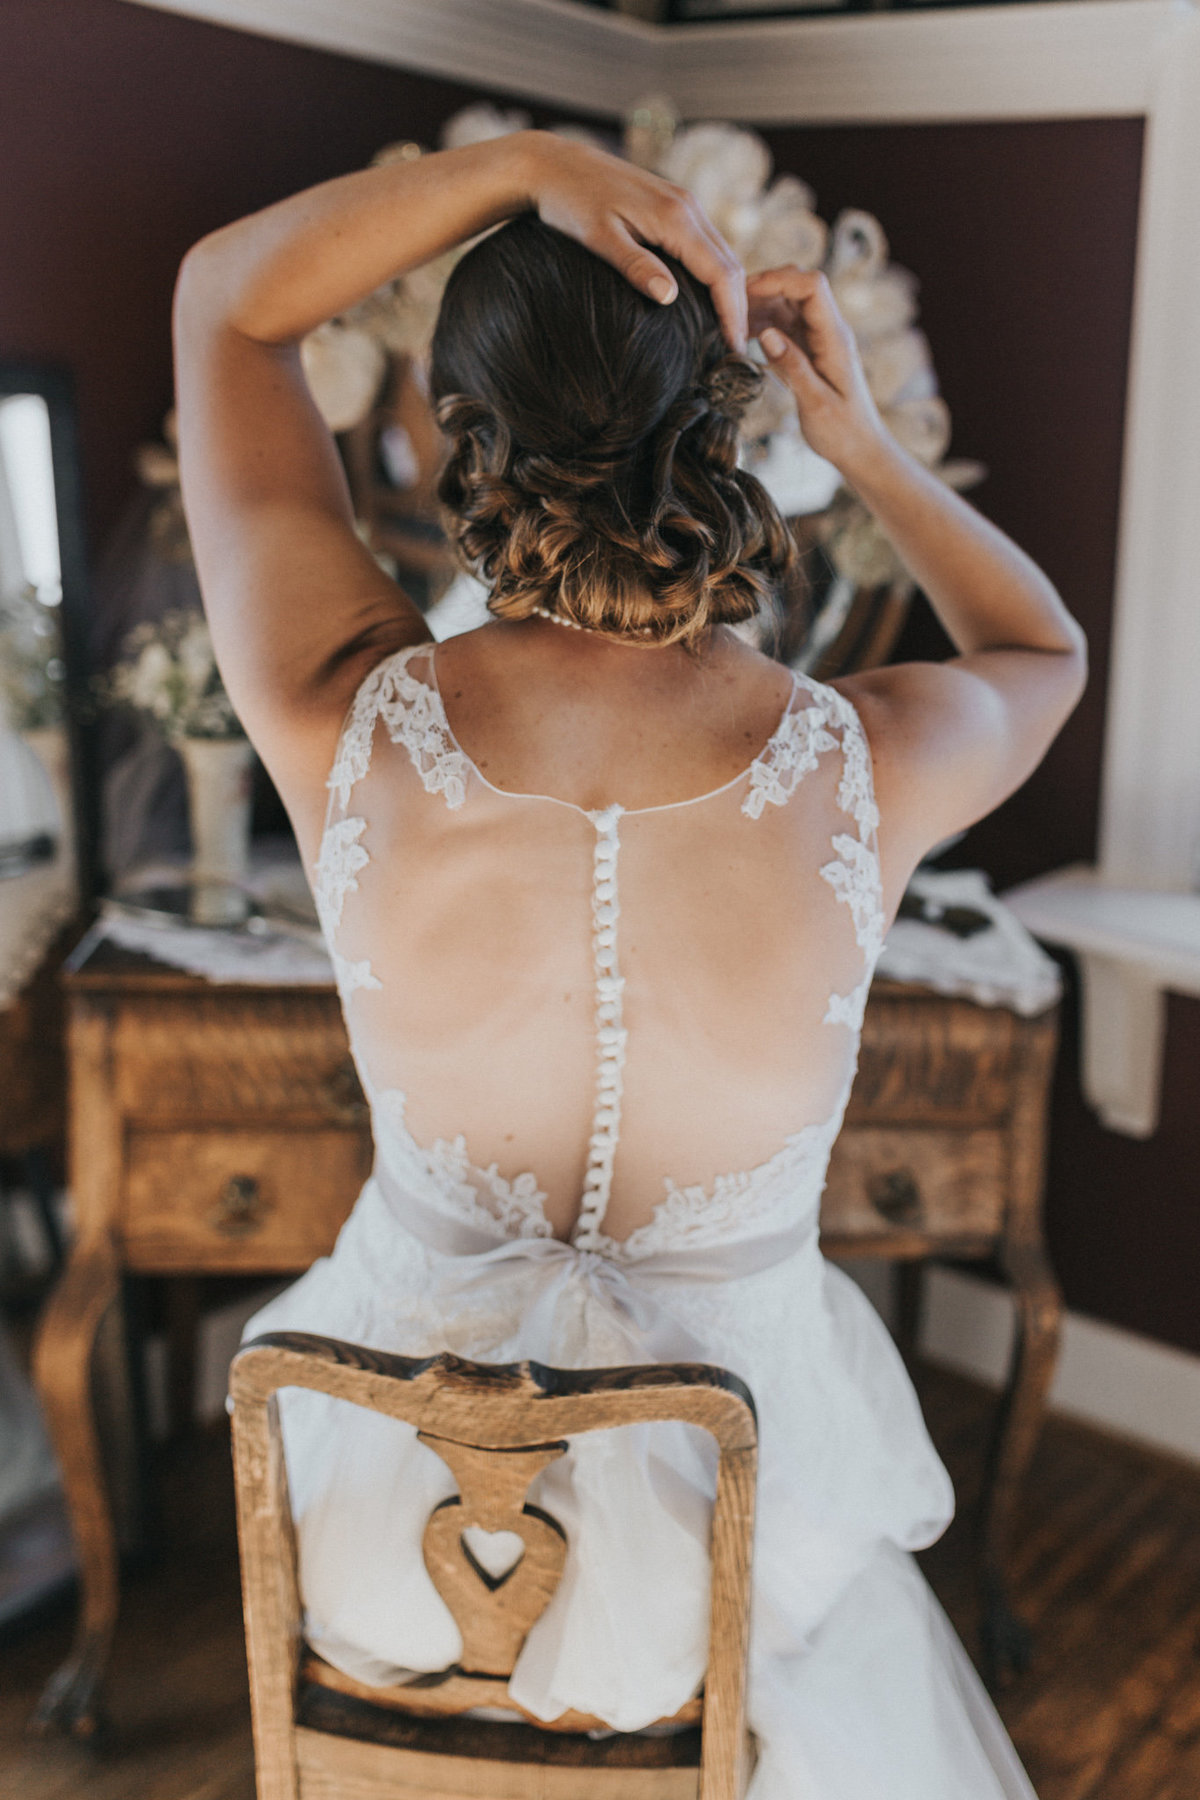 Bride getting prepped to walk down the aisle